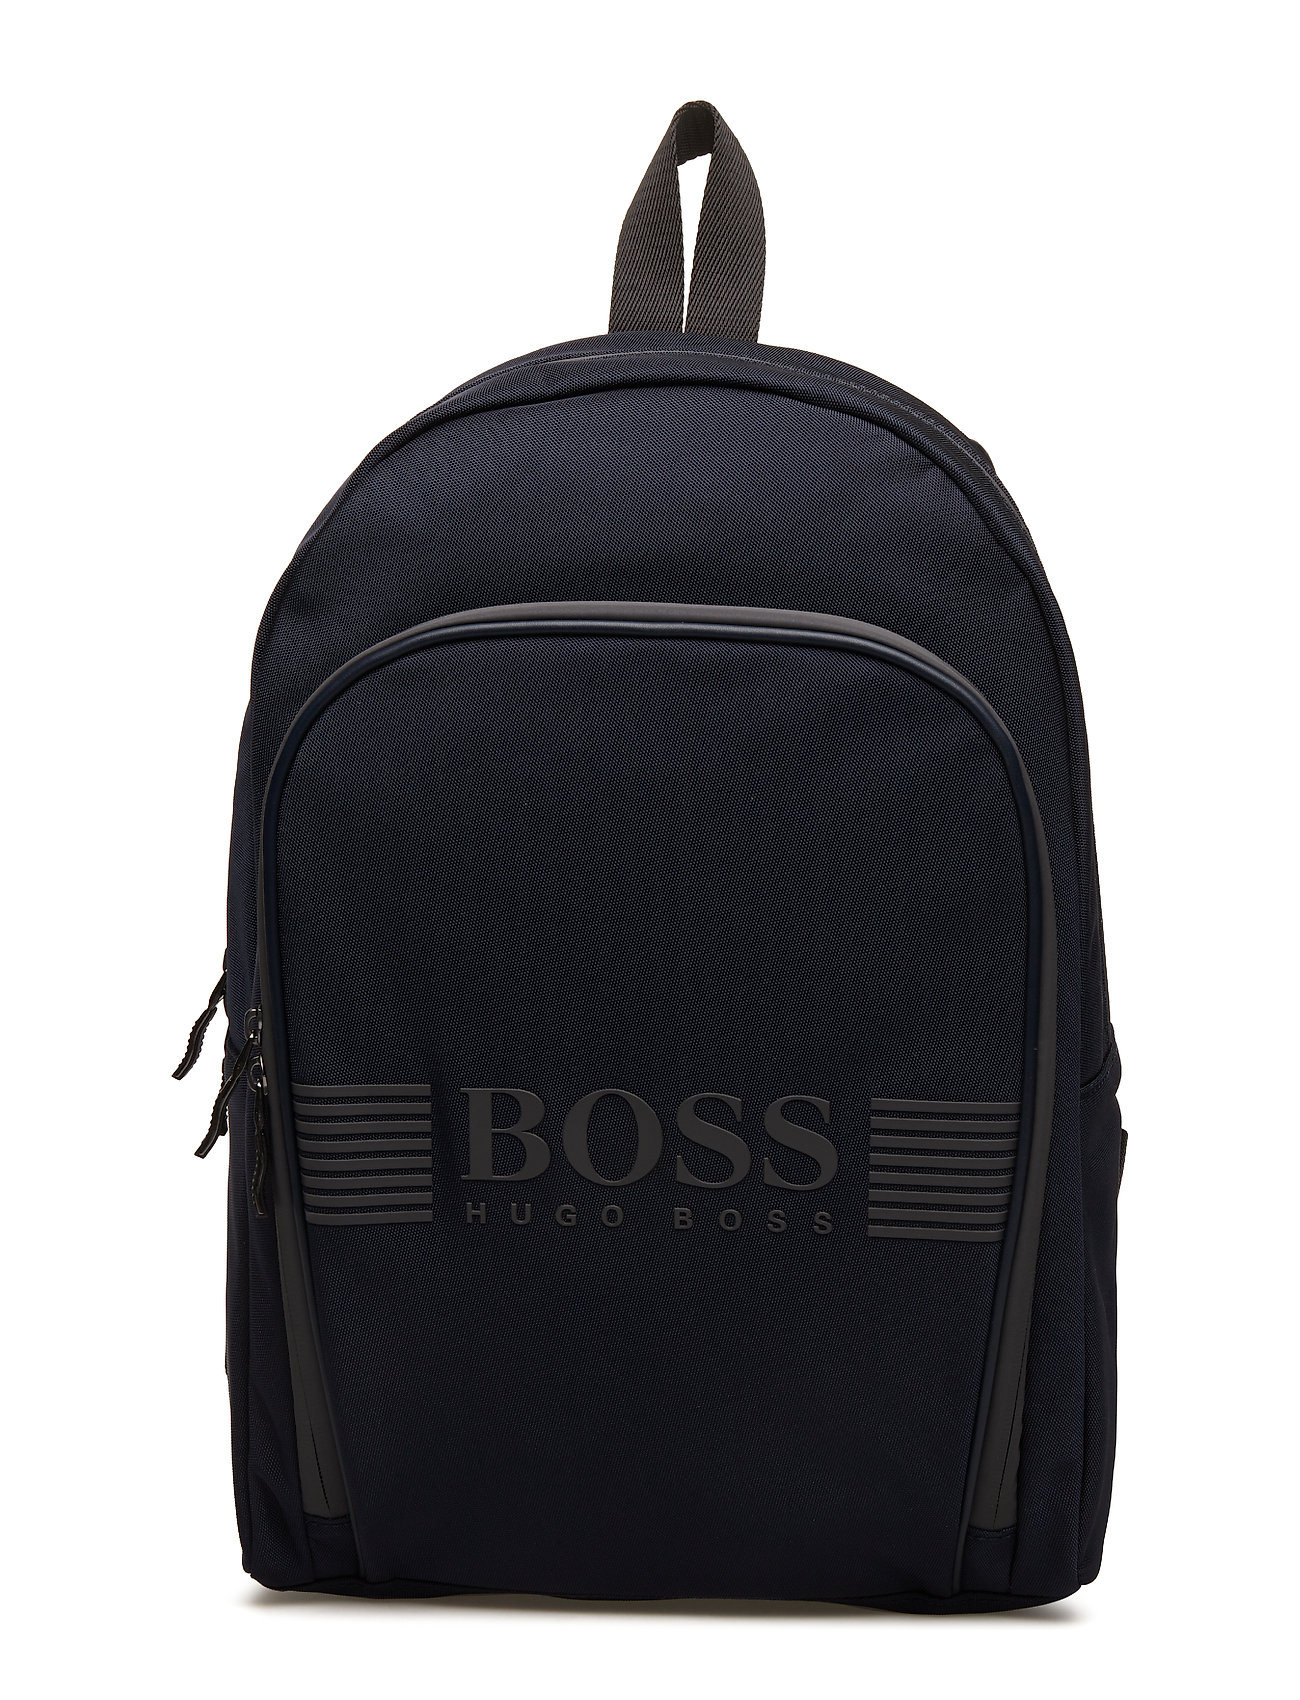 Pixel_backpack - Boss Athleisure Wear